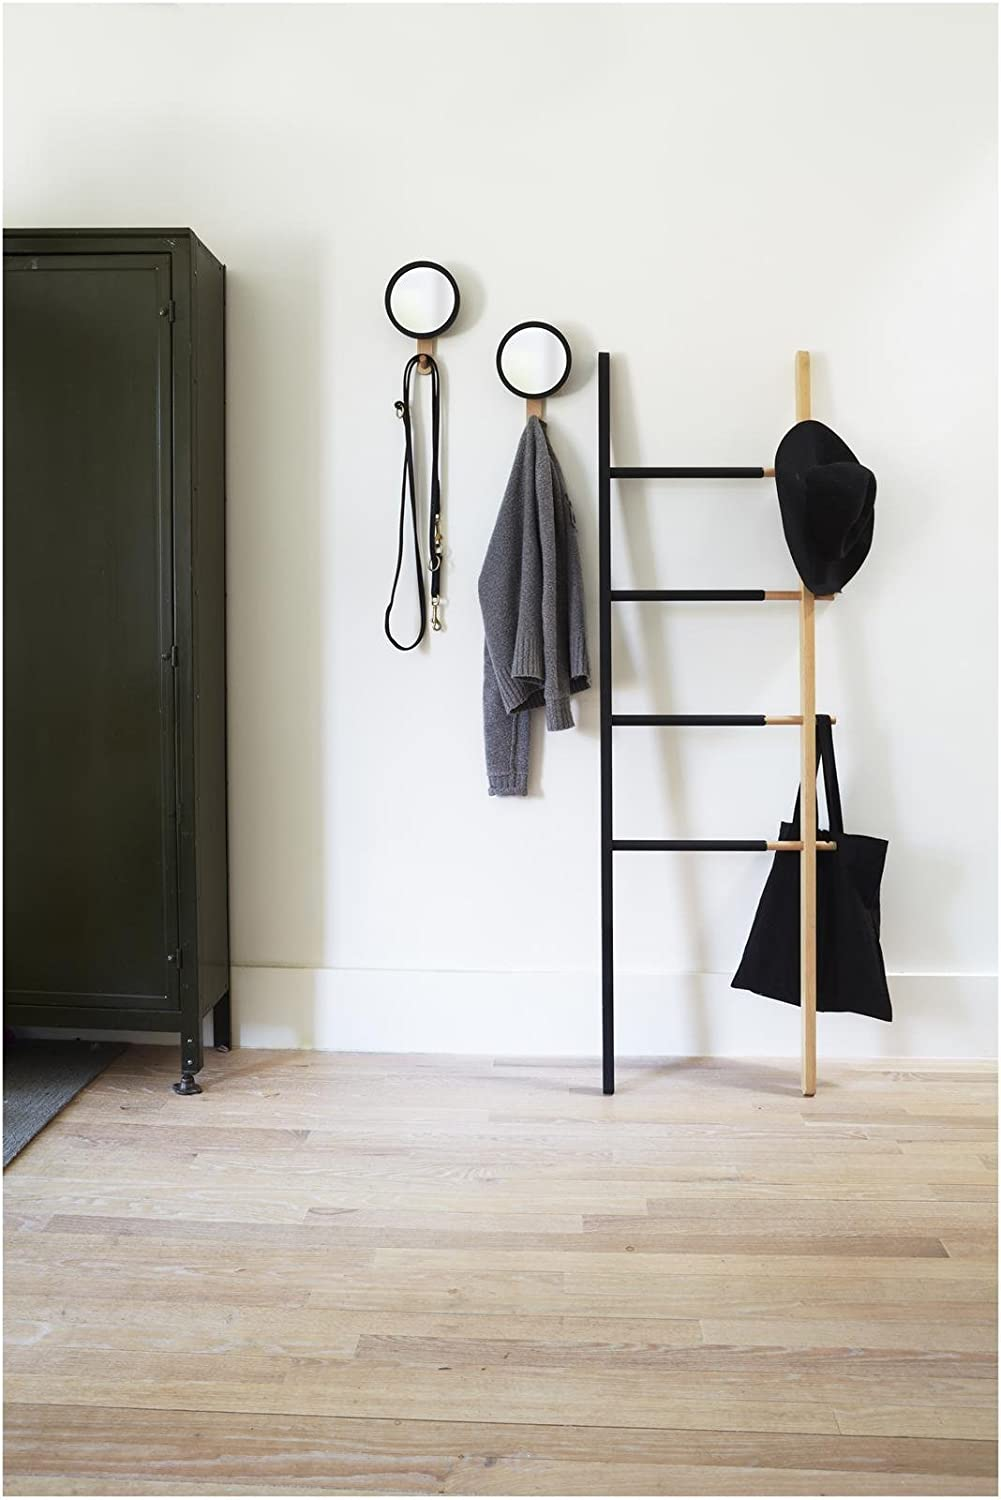 Umbra Hub Ladder Rack - Adjustable Width Freestanding Rack to hang Towels, Clothing and more in Bathroom, Bedroom or Entryway, Black/Walnut 320260-048